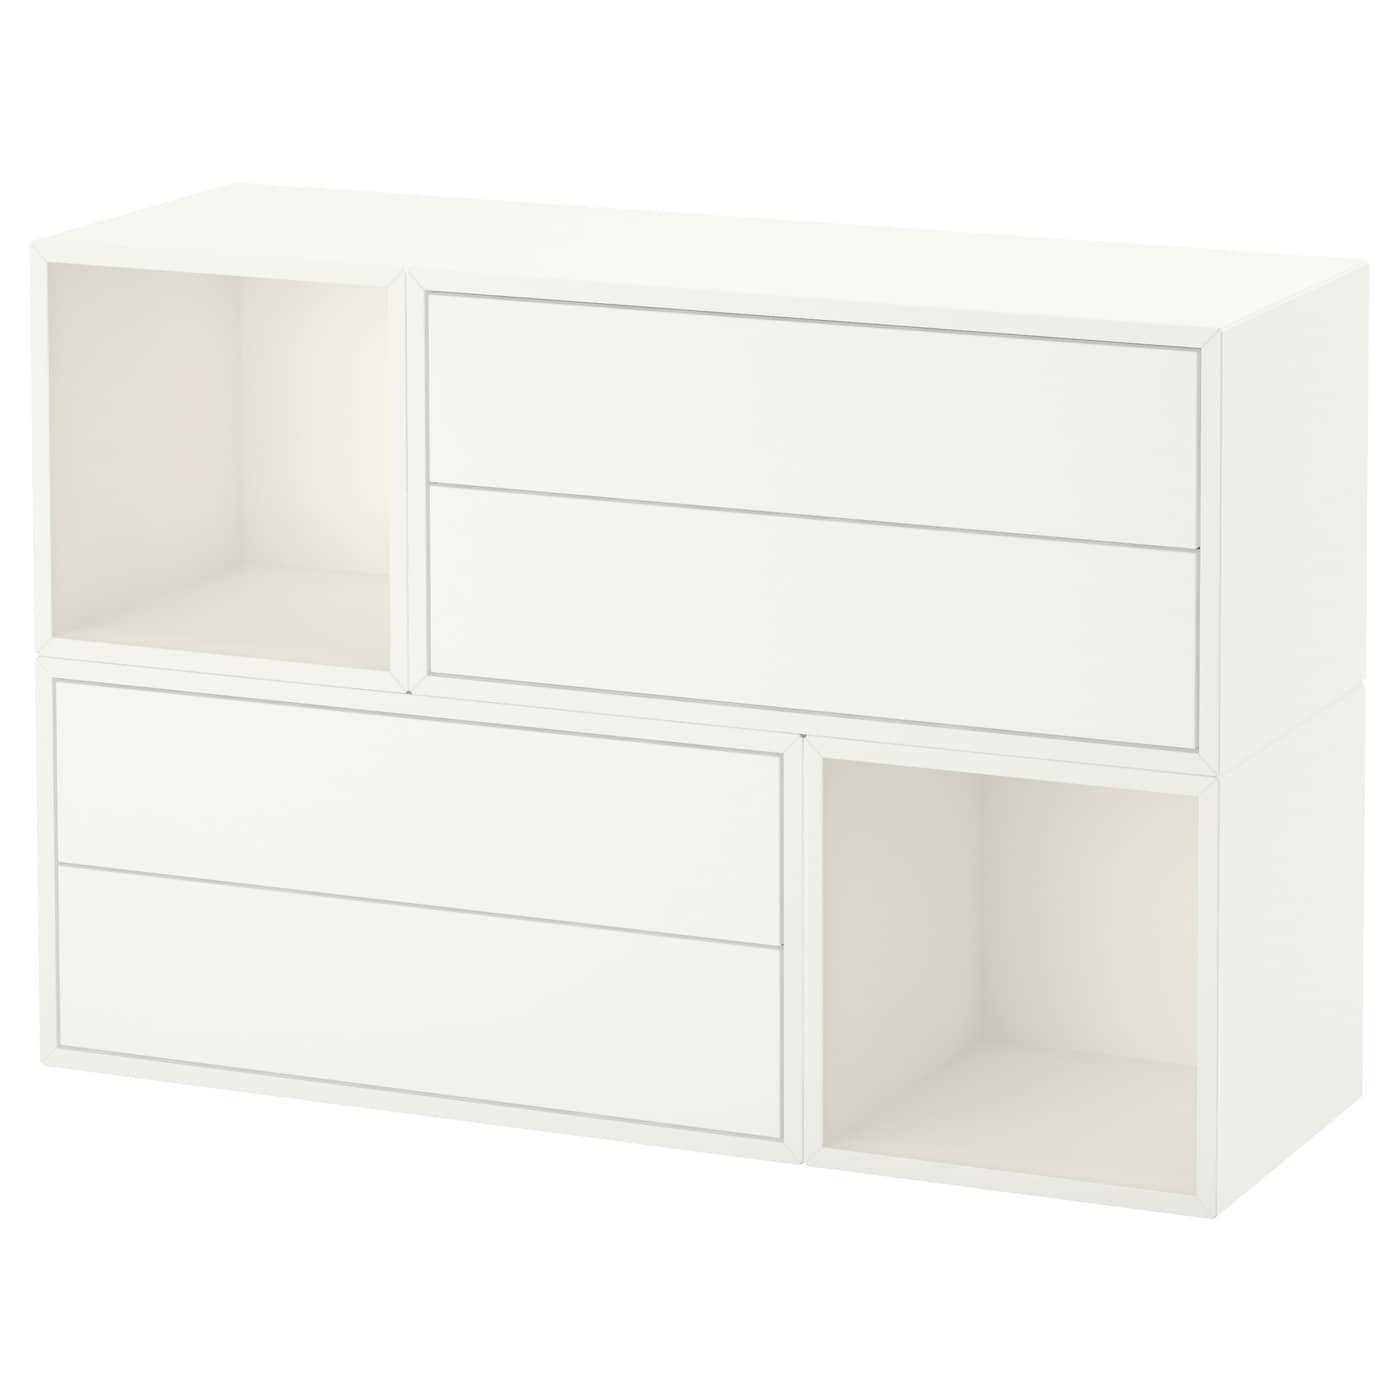 eket wall mounted cabinet combination white 105 x 35 x 70 cm ikea. Black Bedroom Furniture Sets. Home Design Ideas